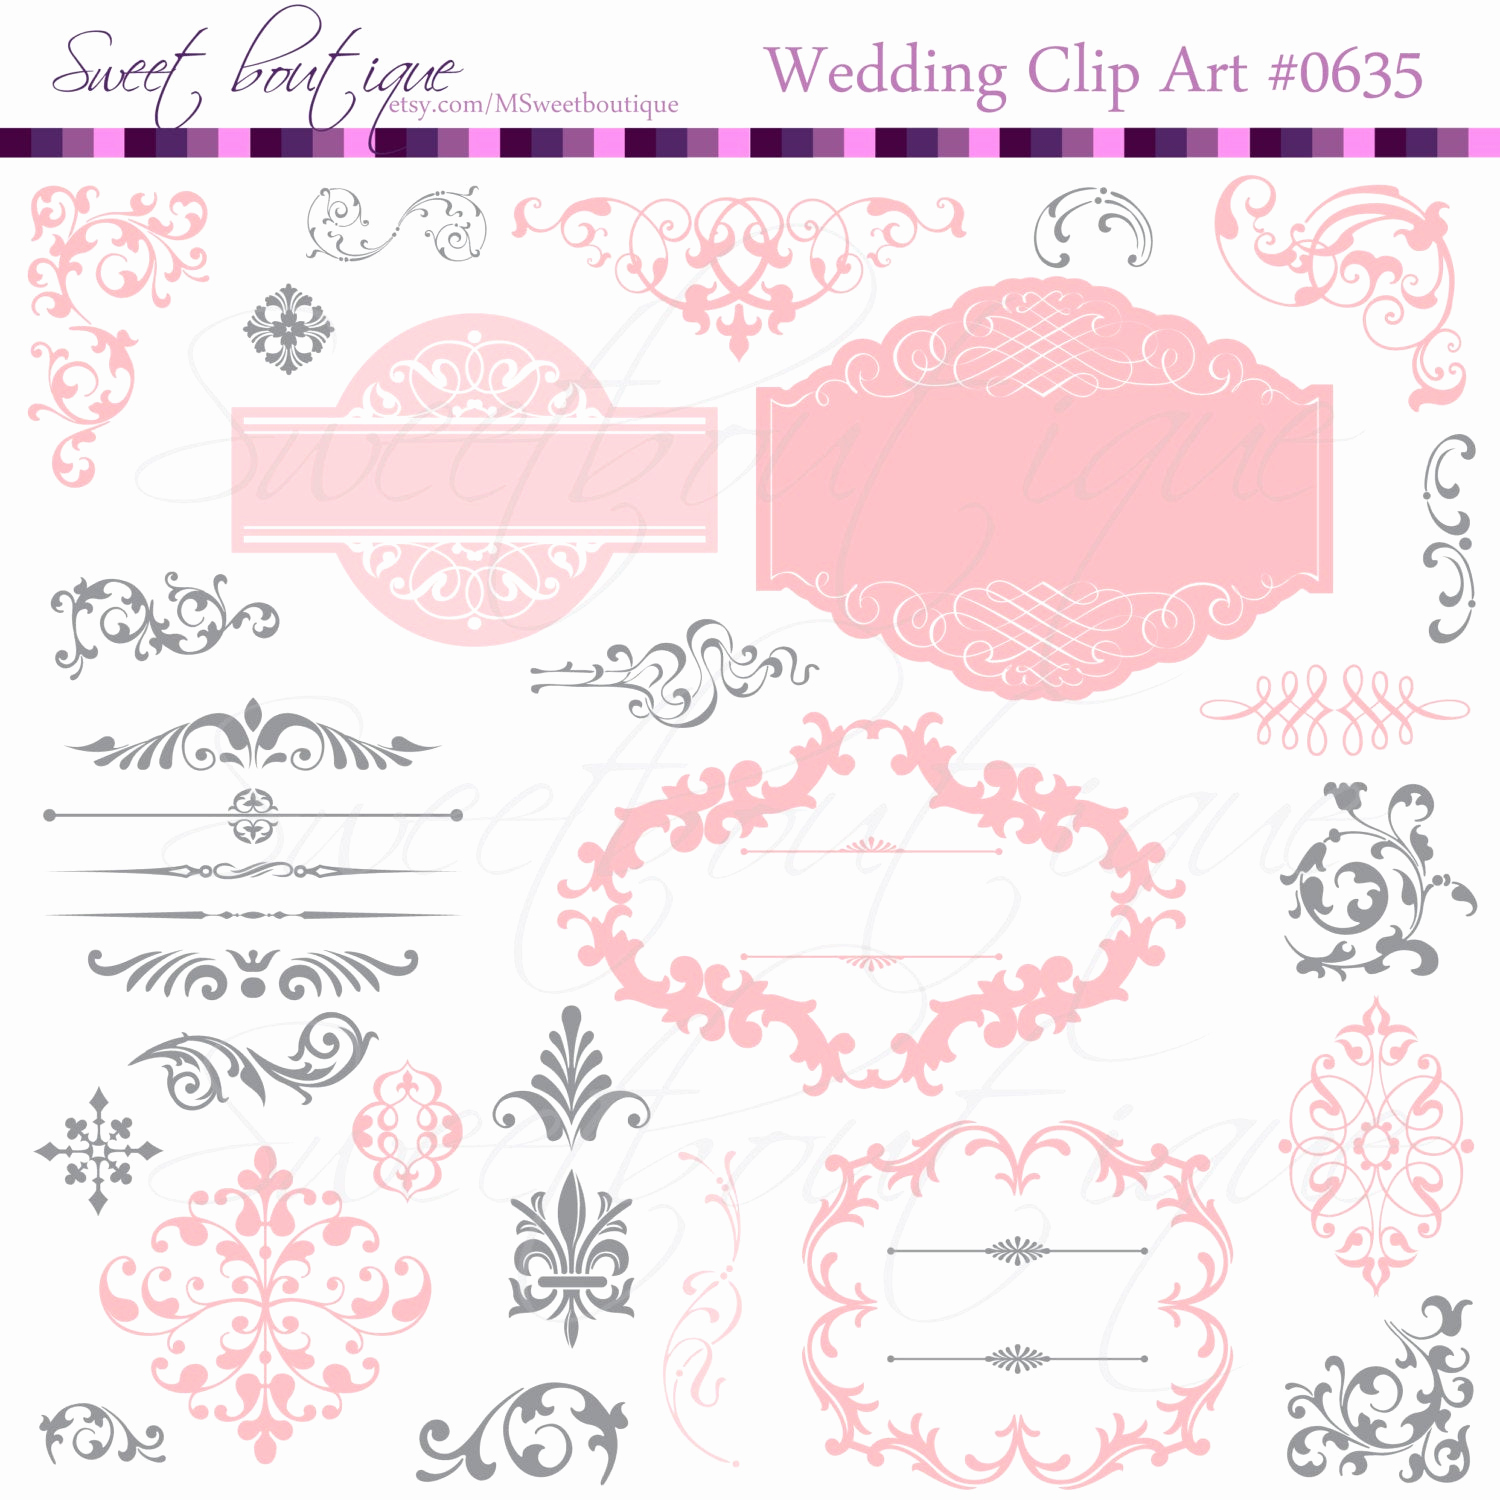 Wedding Invitation Clip Arts Best Of Wedding Digital Frames Clip Art Clipart Scrapbook Invitation